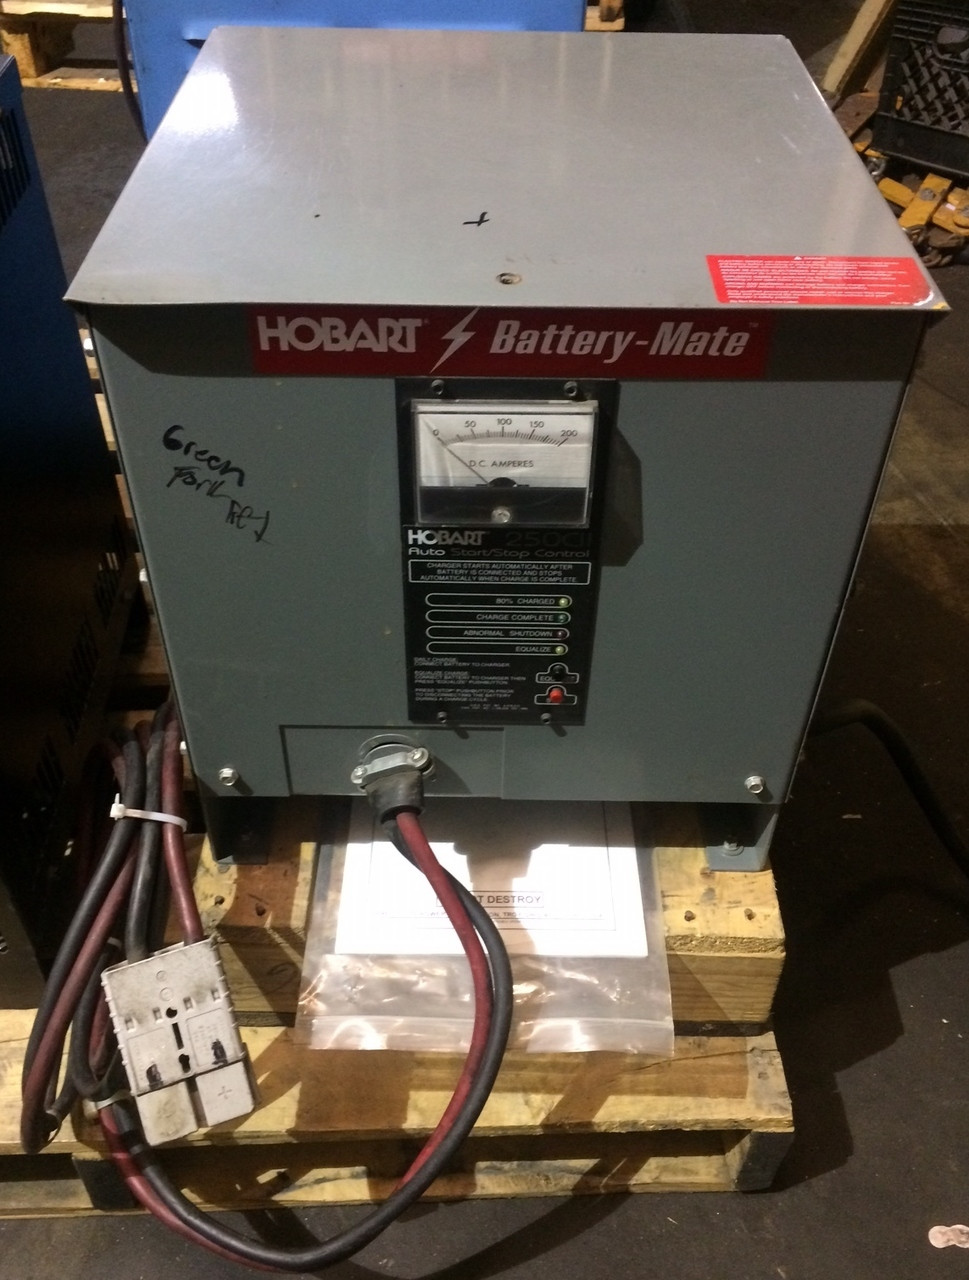 WRG-8370] Hobart Battery Charger Wiring Diagram on